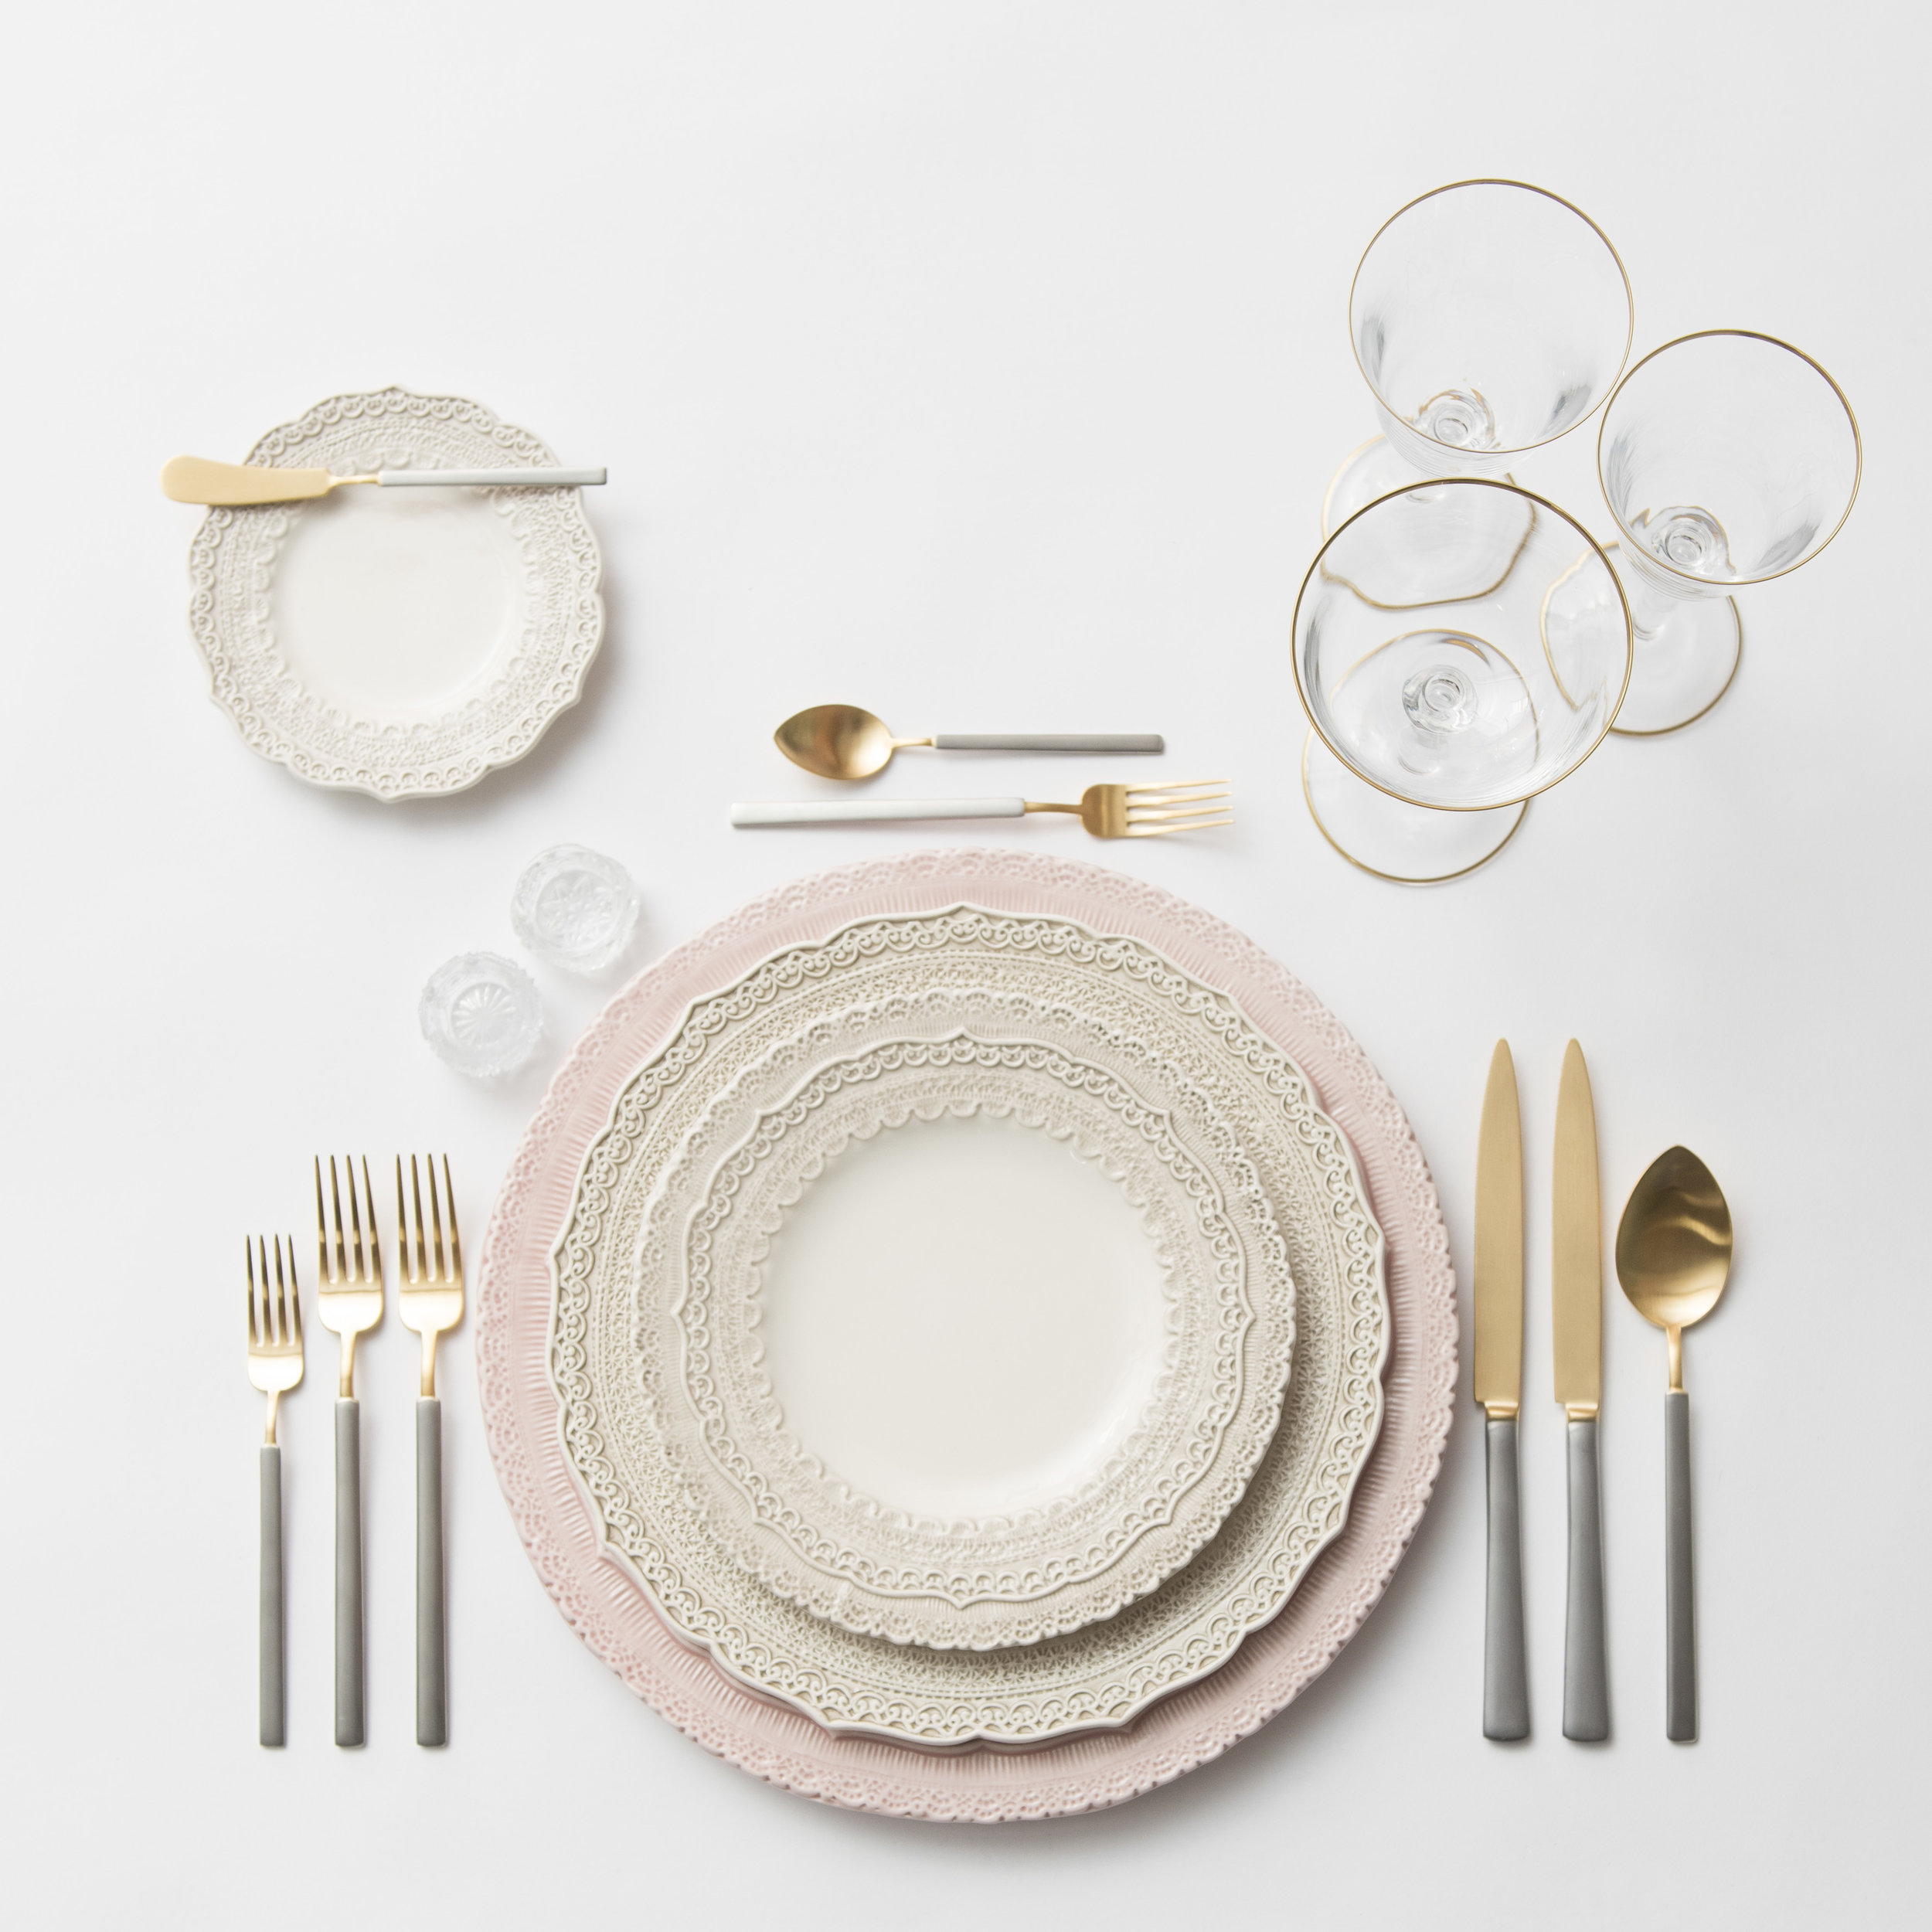 RENT: Lace Chargers in Blush + Lace Dinnerware in White + Axel Flatware in Matte 24k Gold/Silver + Chloe 24k Gold Rimmed Stemware + Antique Crystal Salt Cellars  SHOP:Chloe 24k Gold Rimmed Stemware